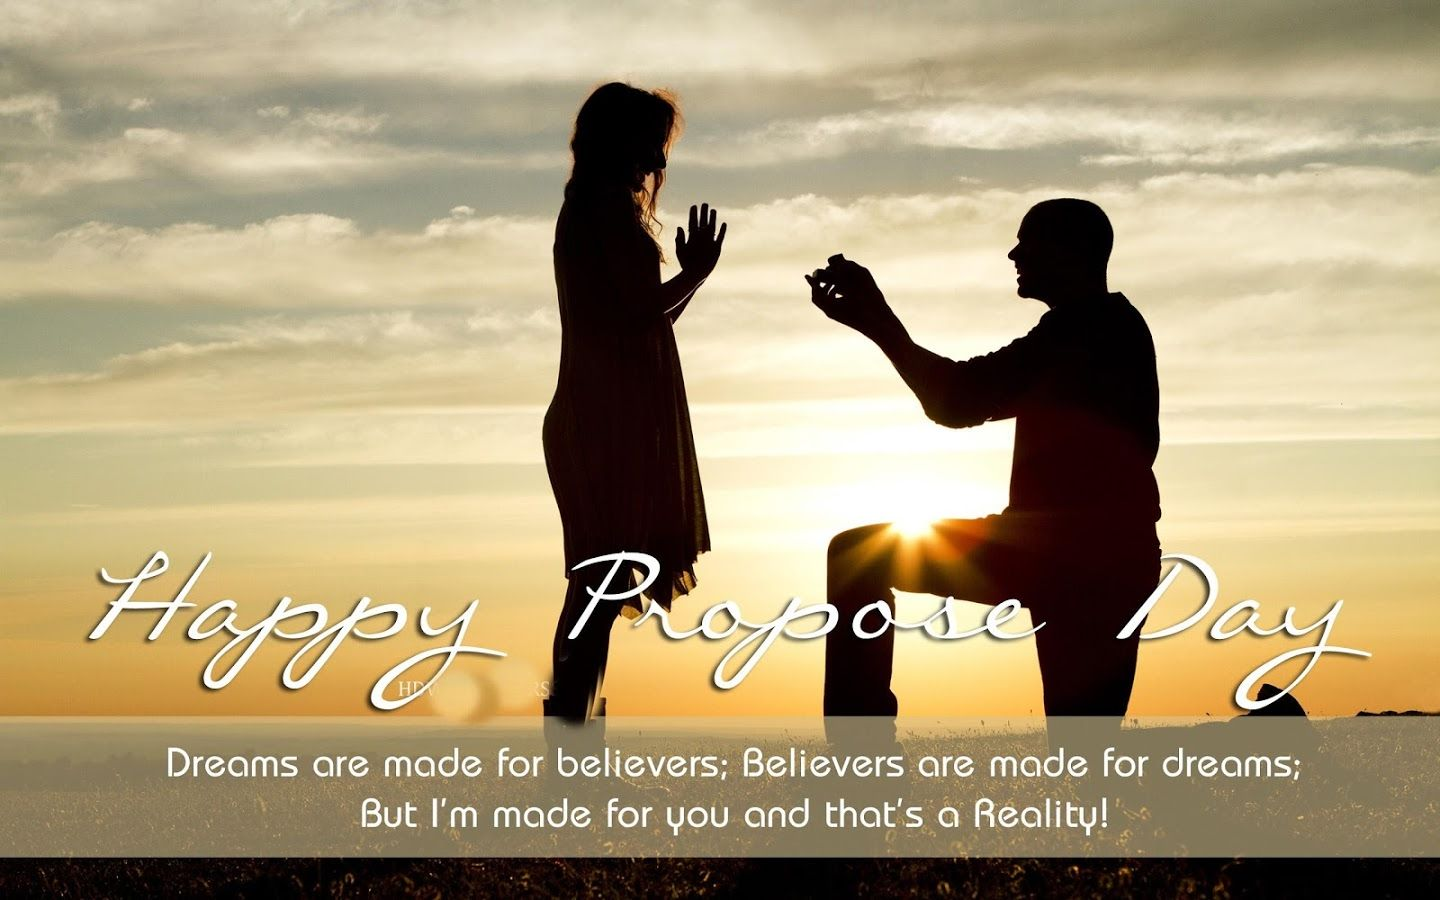 【100+】Happy Propose Day Pictures Wishes Greetings for your